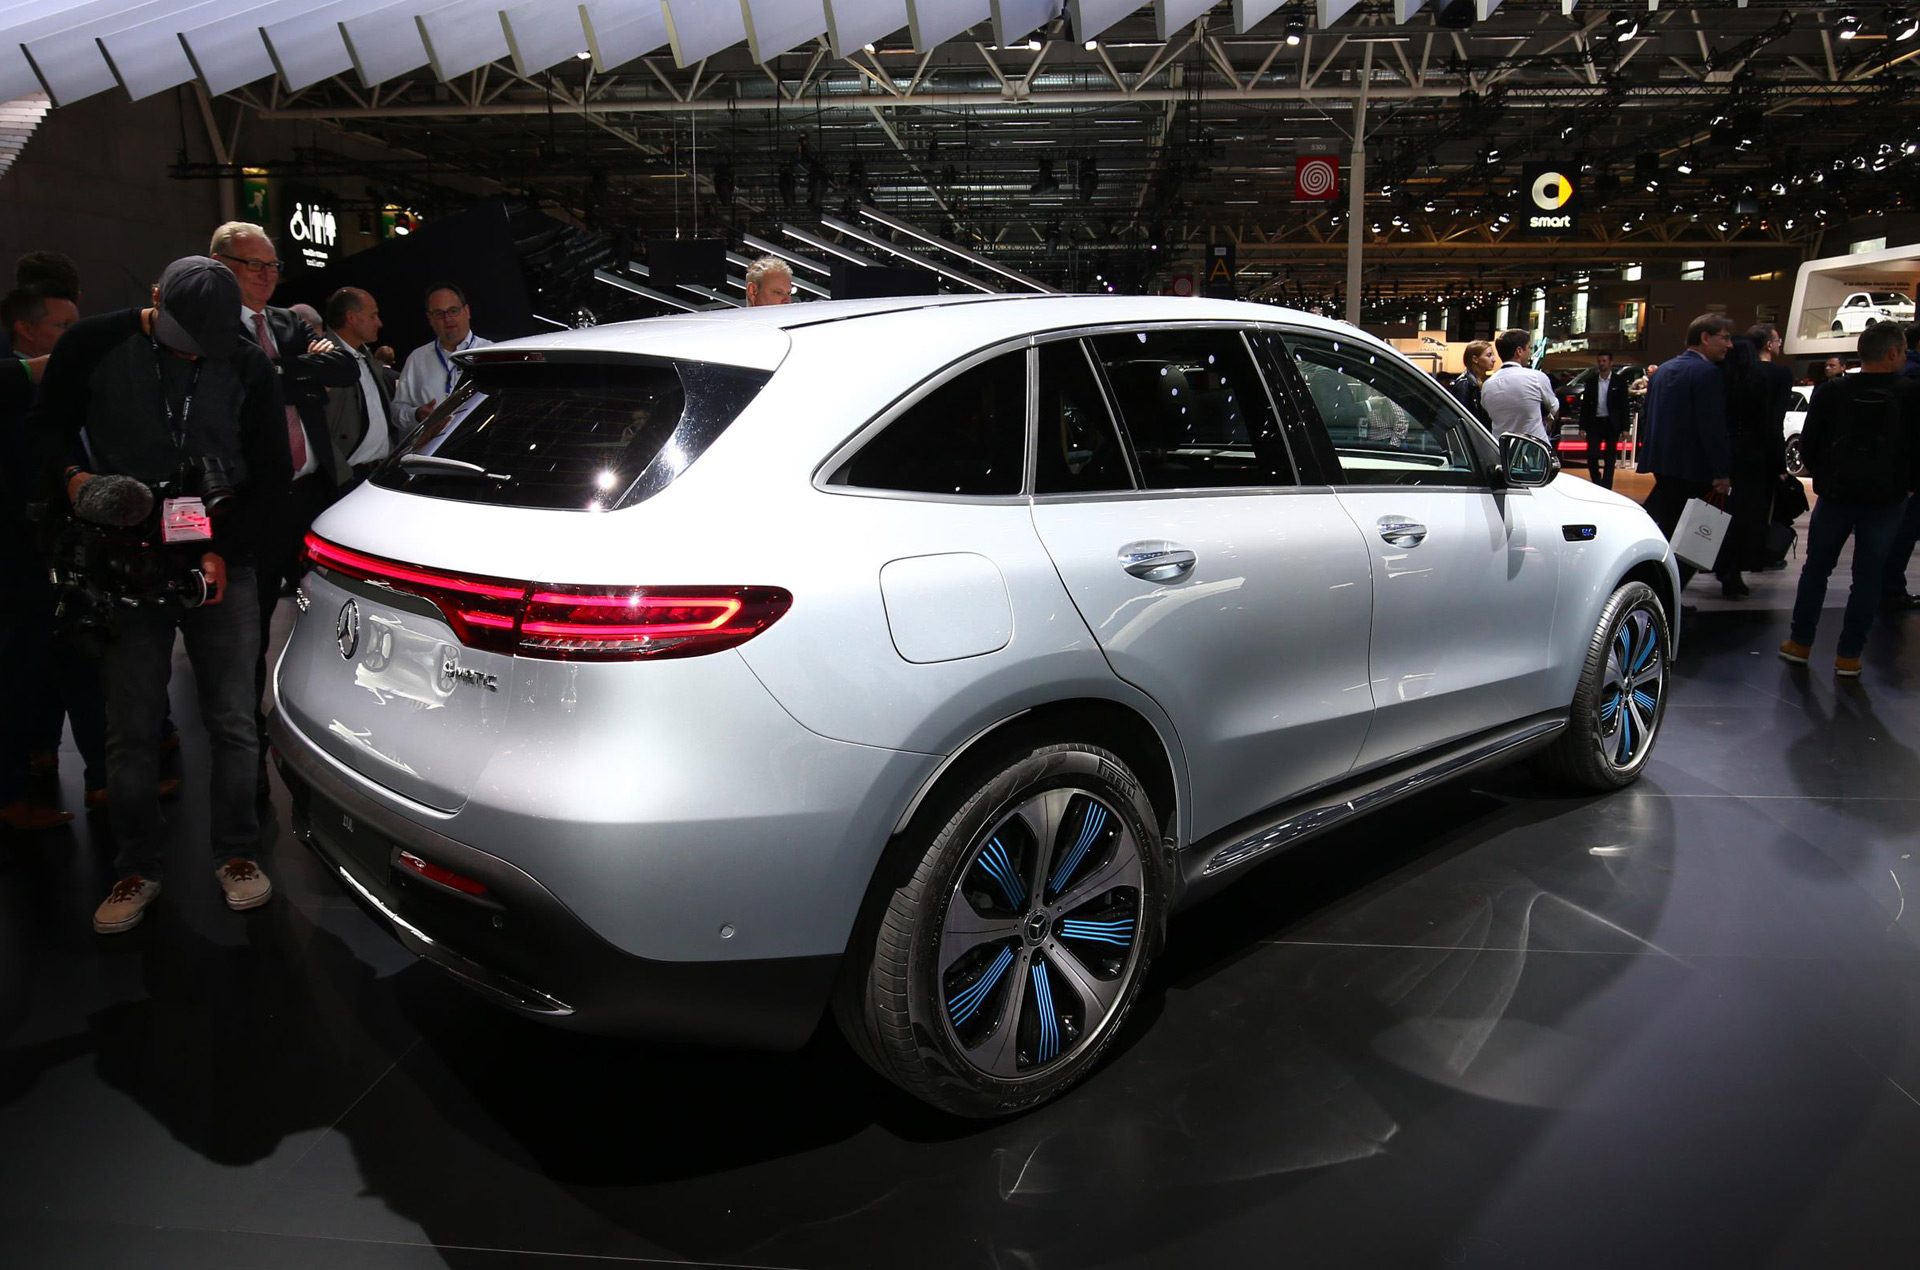 2020 Mercedes-Benz EQC, Borgward electric cars, and ...